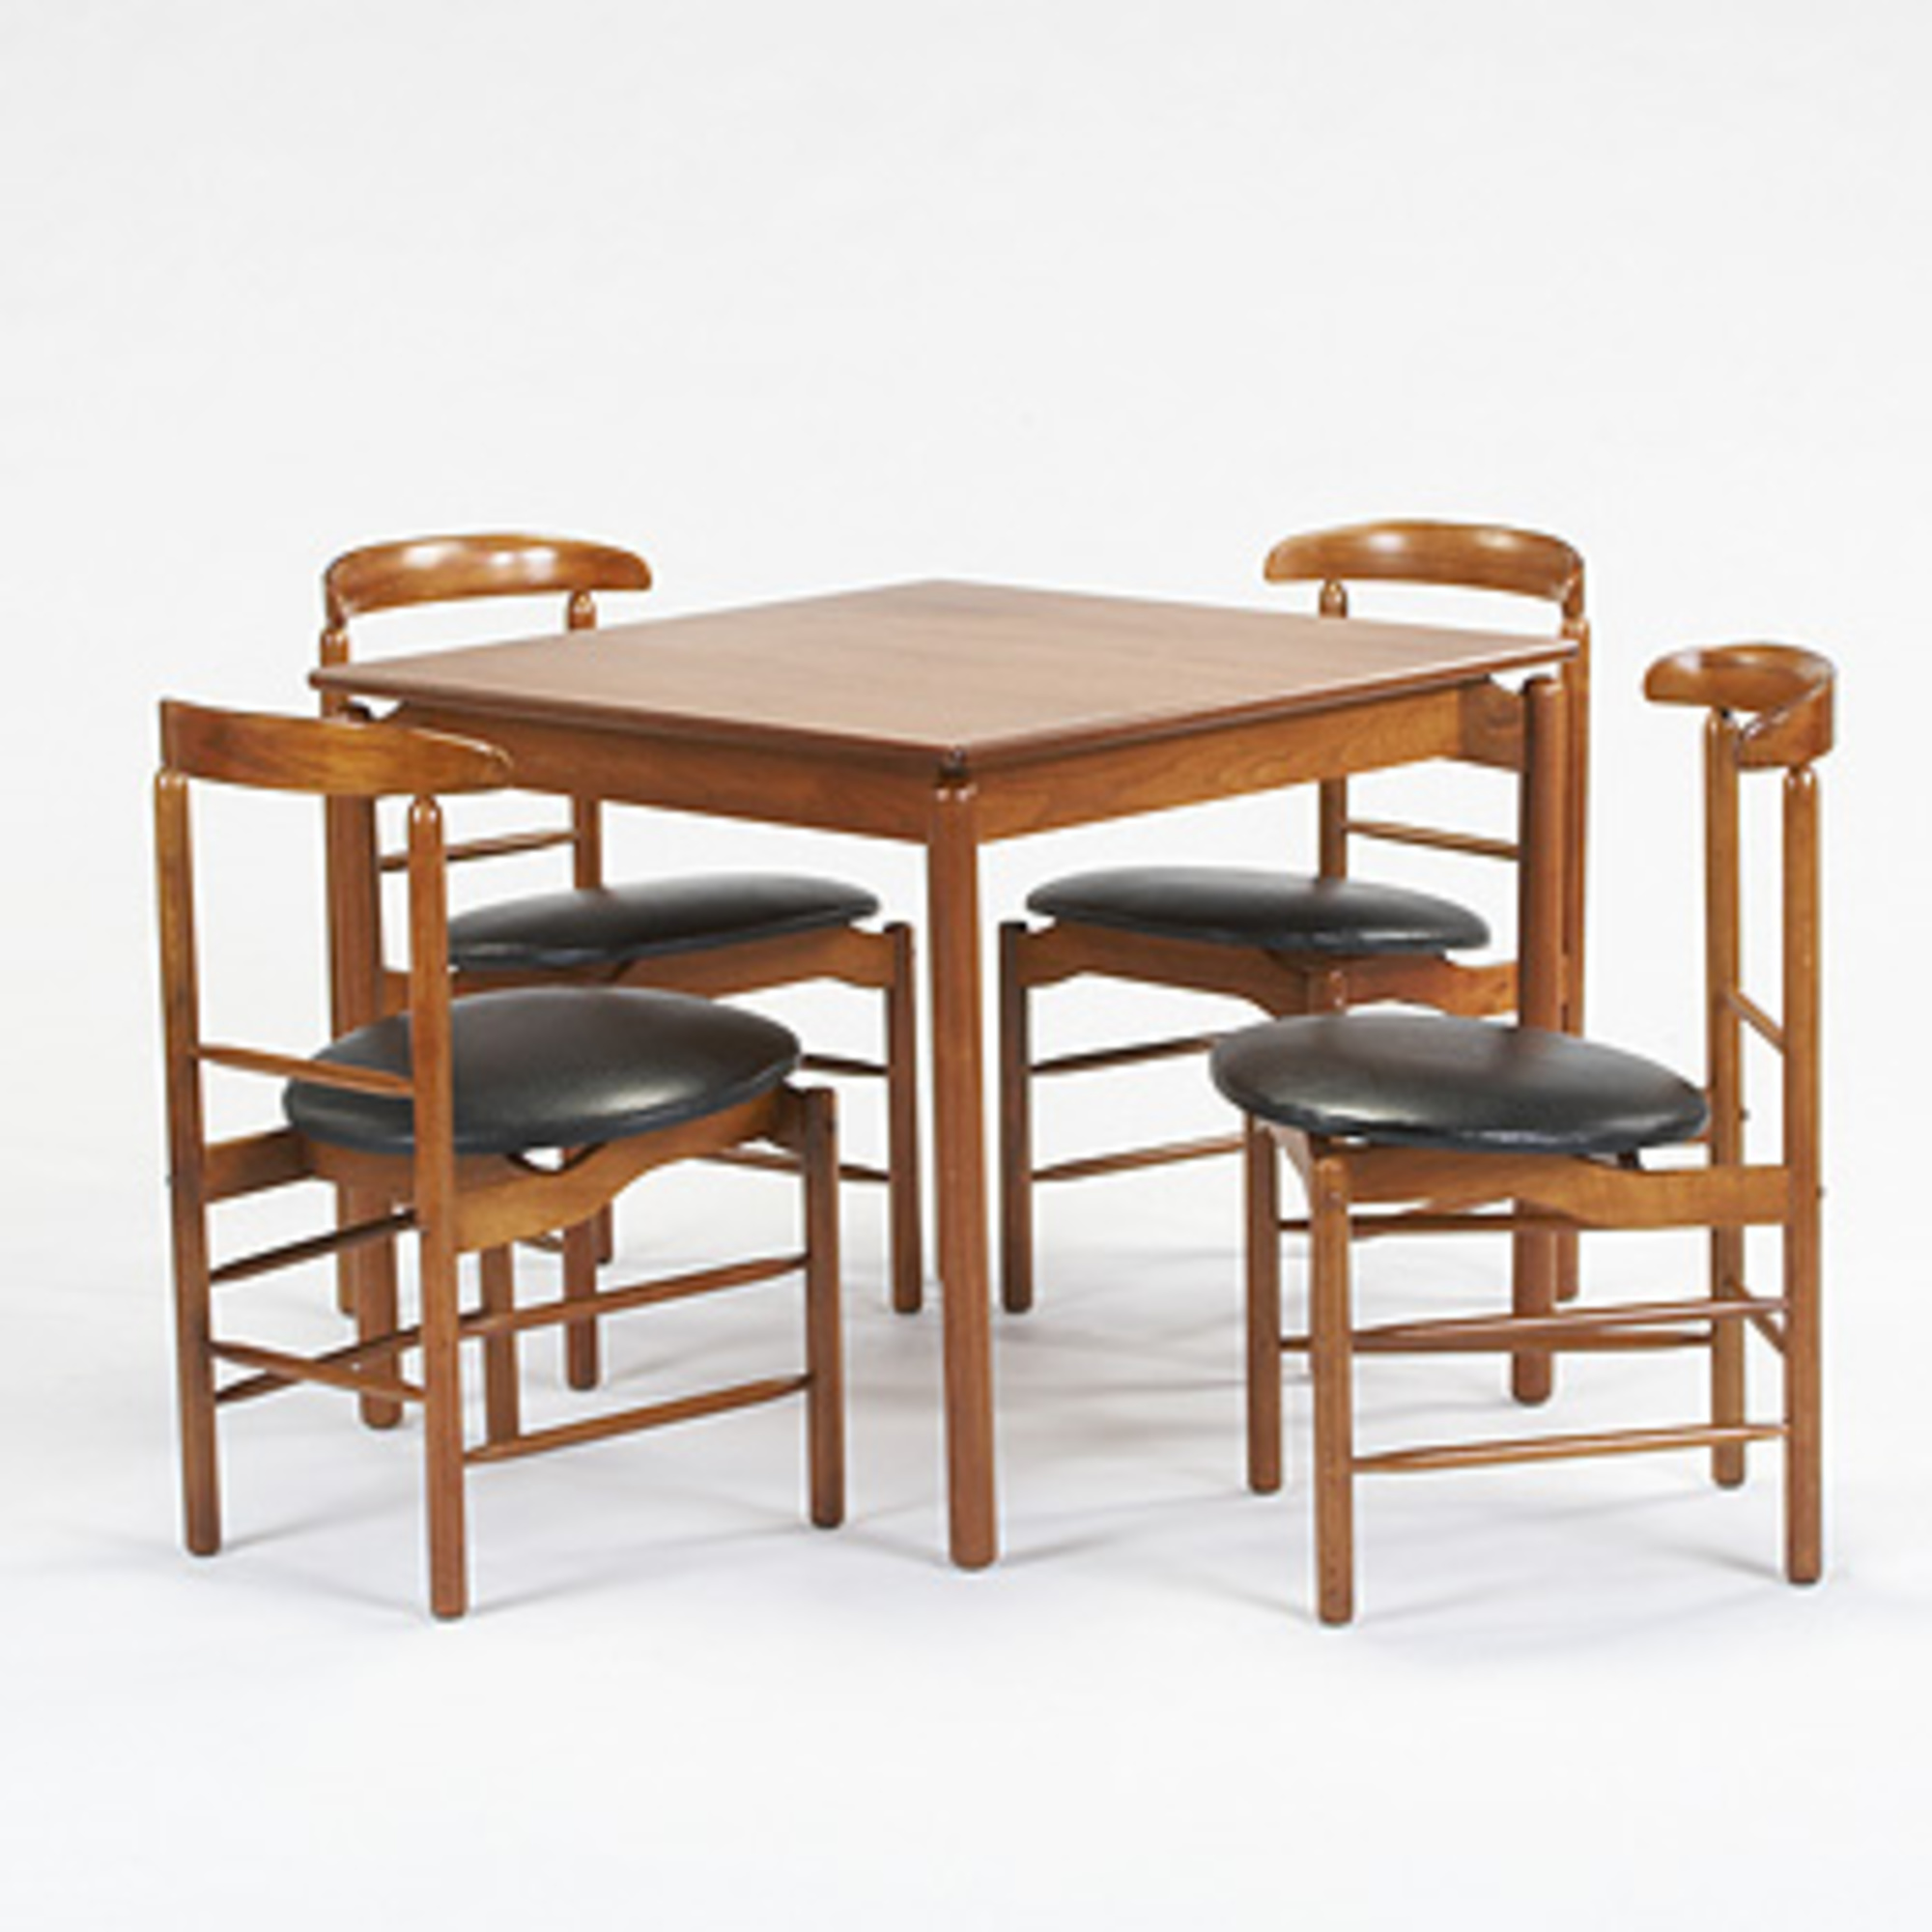 607 Greta Magnusson Grossman Game Table And Four Chairs Mass Modern 16 September 2006 Auctions Wright Auctions Of Art And Design